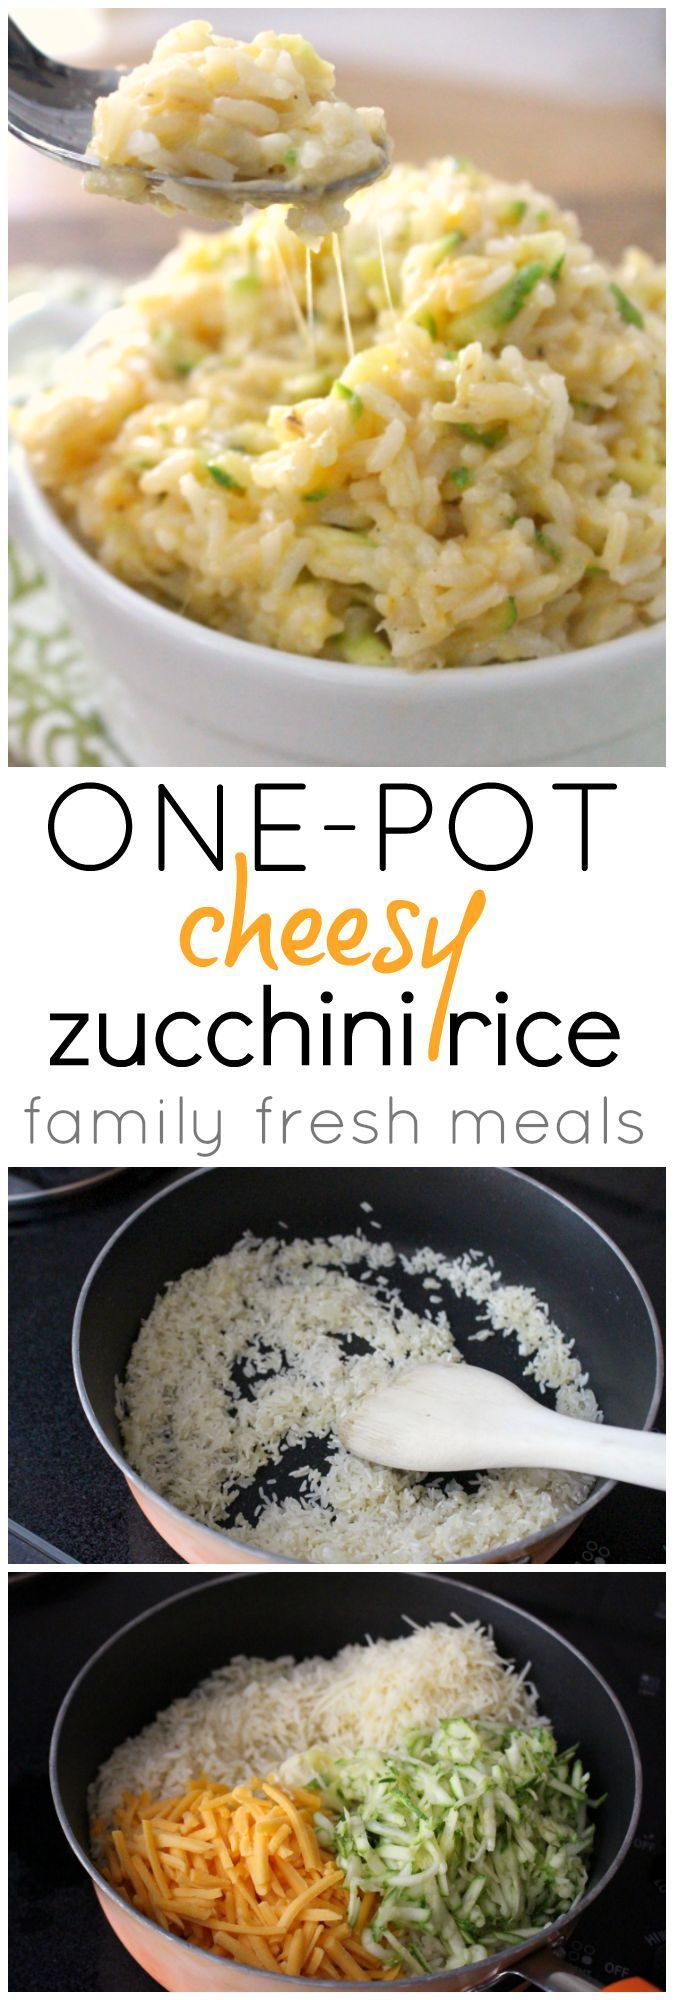 One Pot Cheesy Zucchini Rice - A quick recipe that will be the most favorite side of your family!  #cheesy #zucchini #rice #familyfreshmeals #onepot #easyrecipe